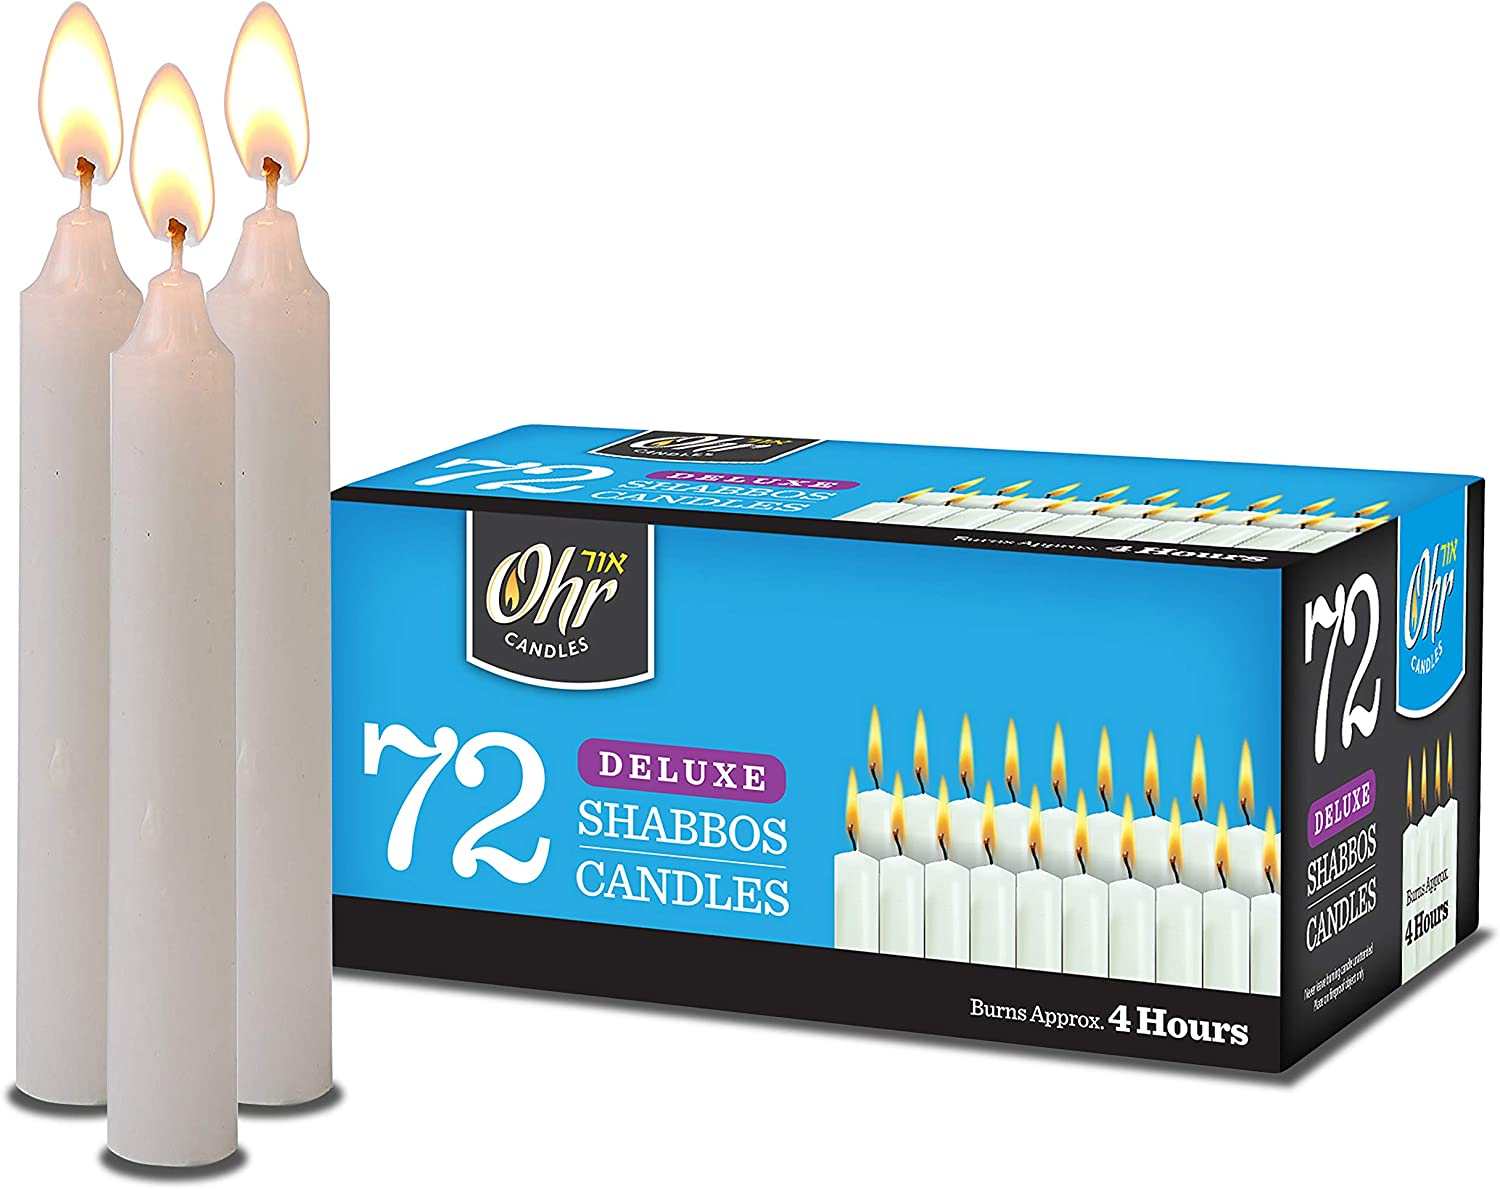 Ner Mitzvah Shabbat Candles - Traditional Shabbos Candles - 4 Hour - 72 Count - by Ohr